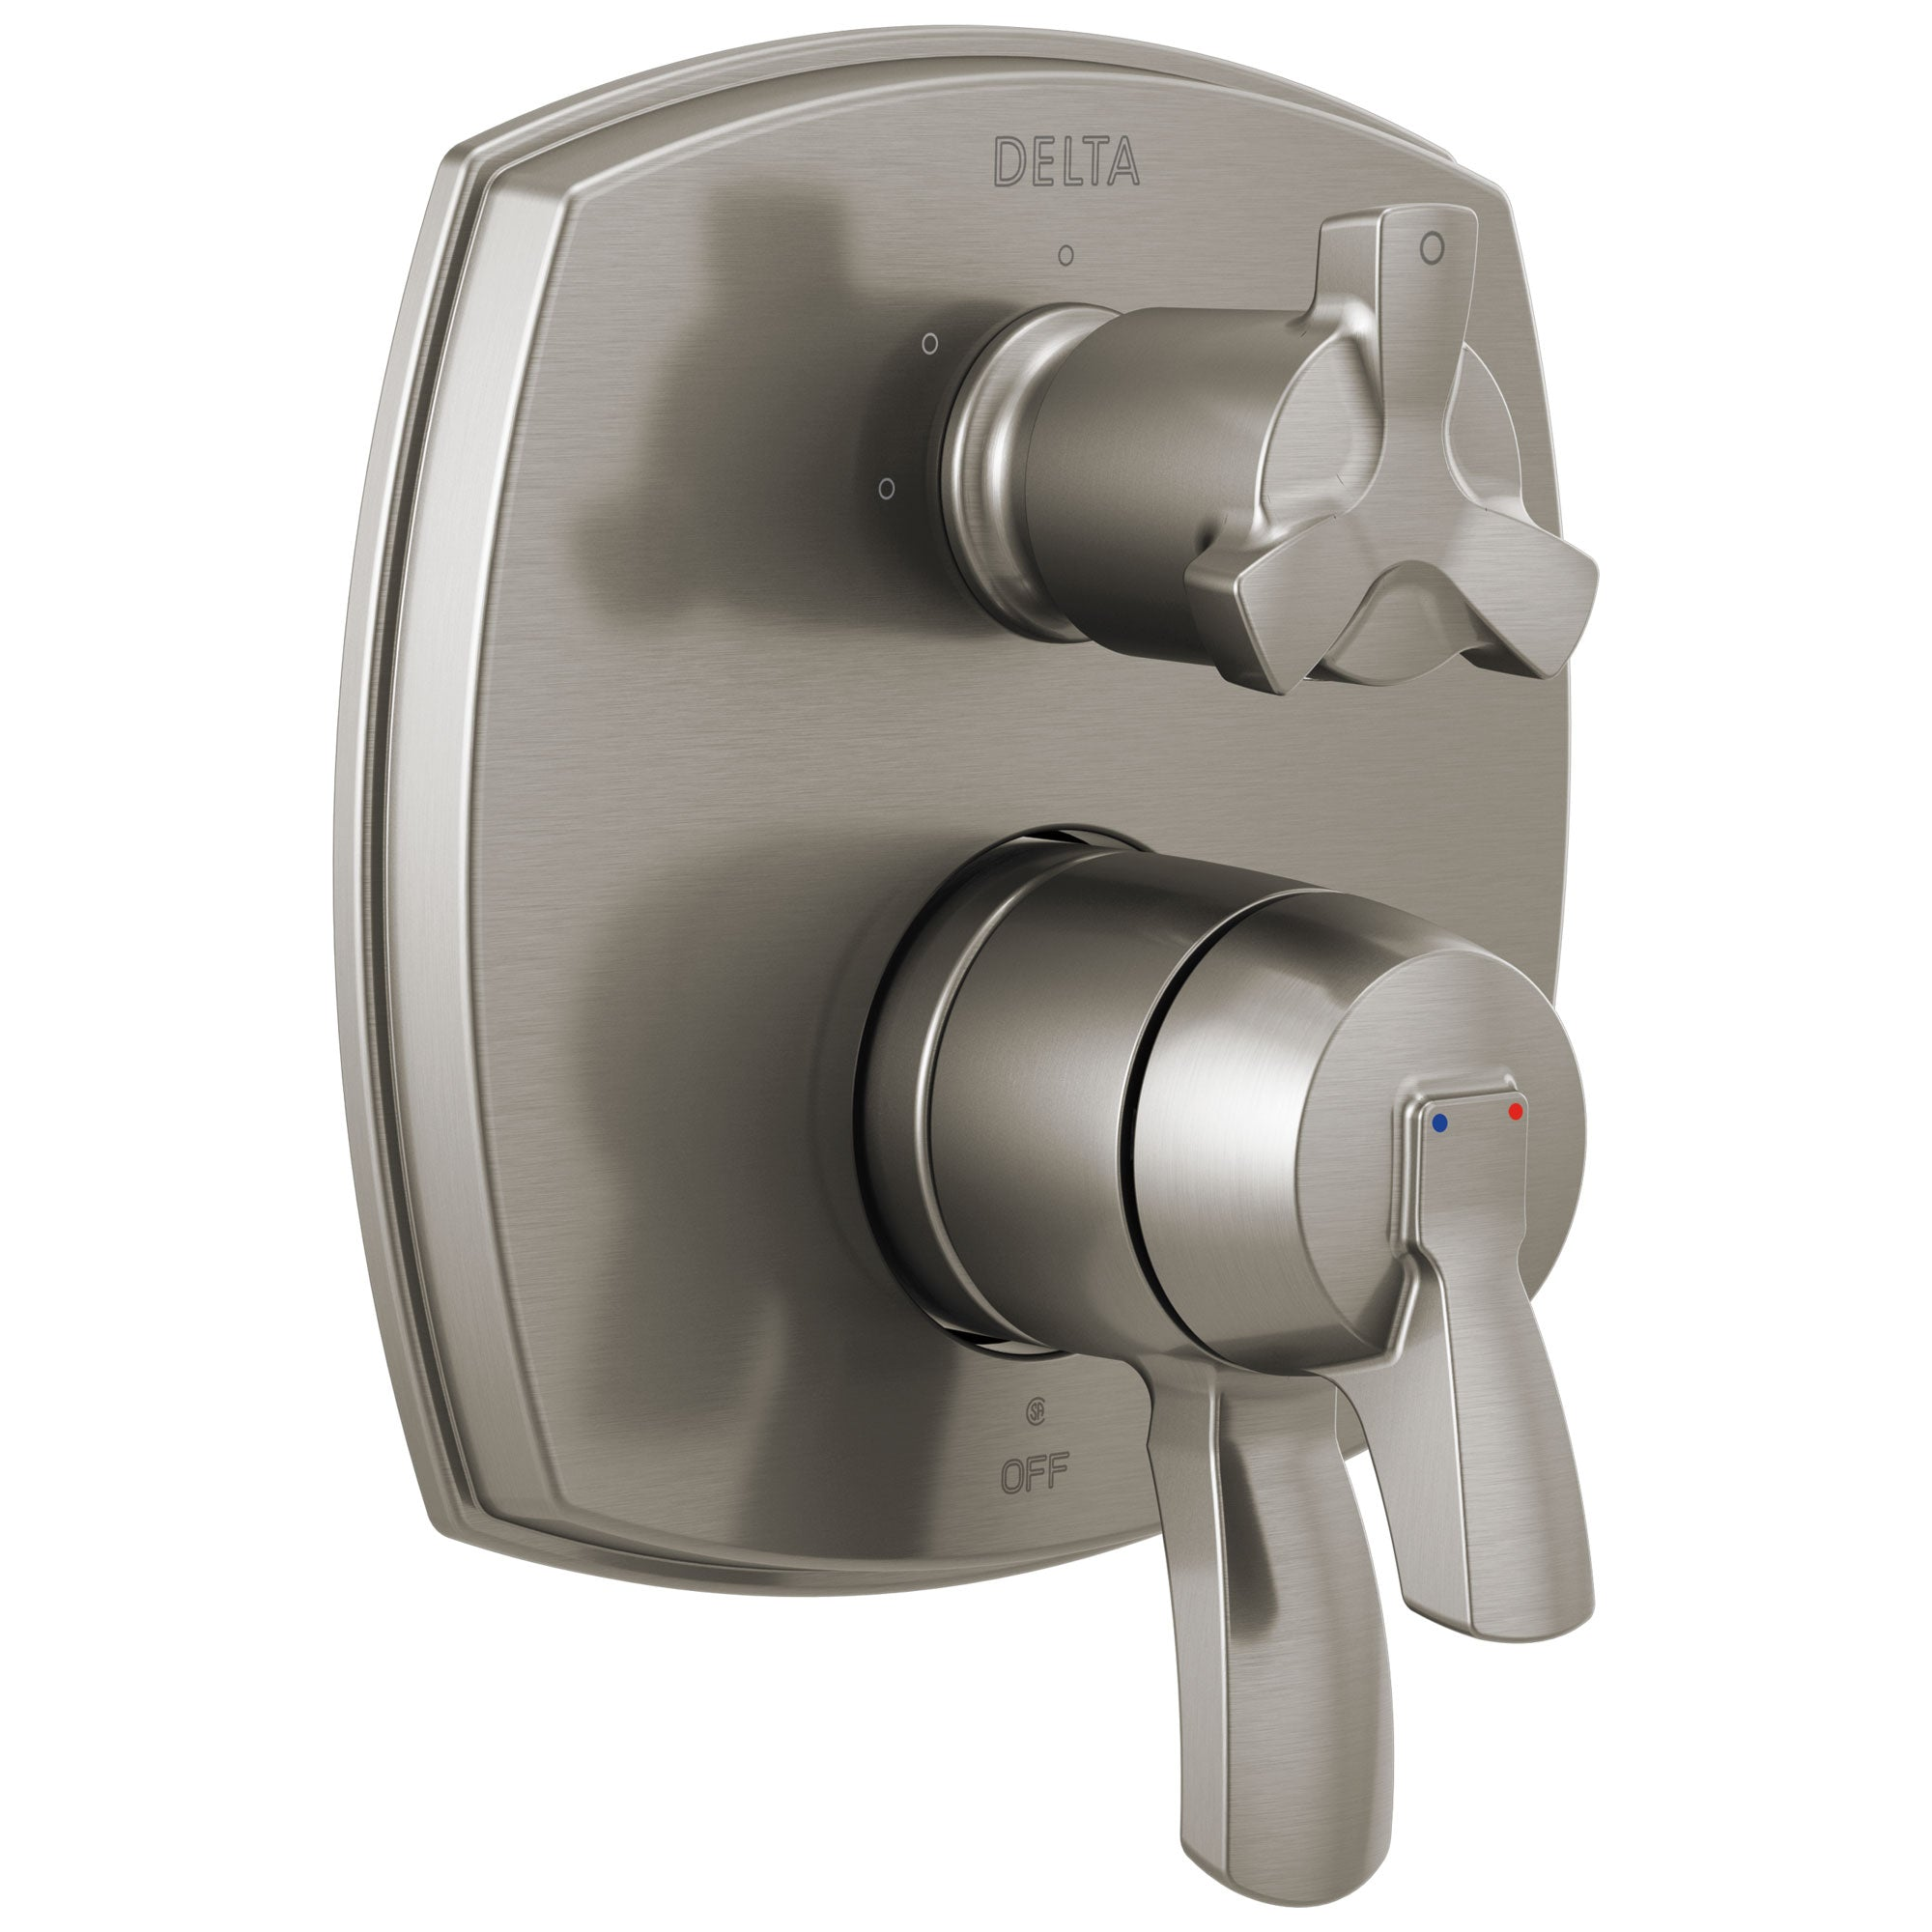 Delta Stryke Stainless Steel Finish 17 Series Integrated 3-Function Cross Handle Diverter Shower System Control Includes Valve and Handles D3141V